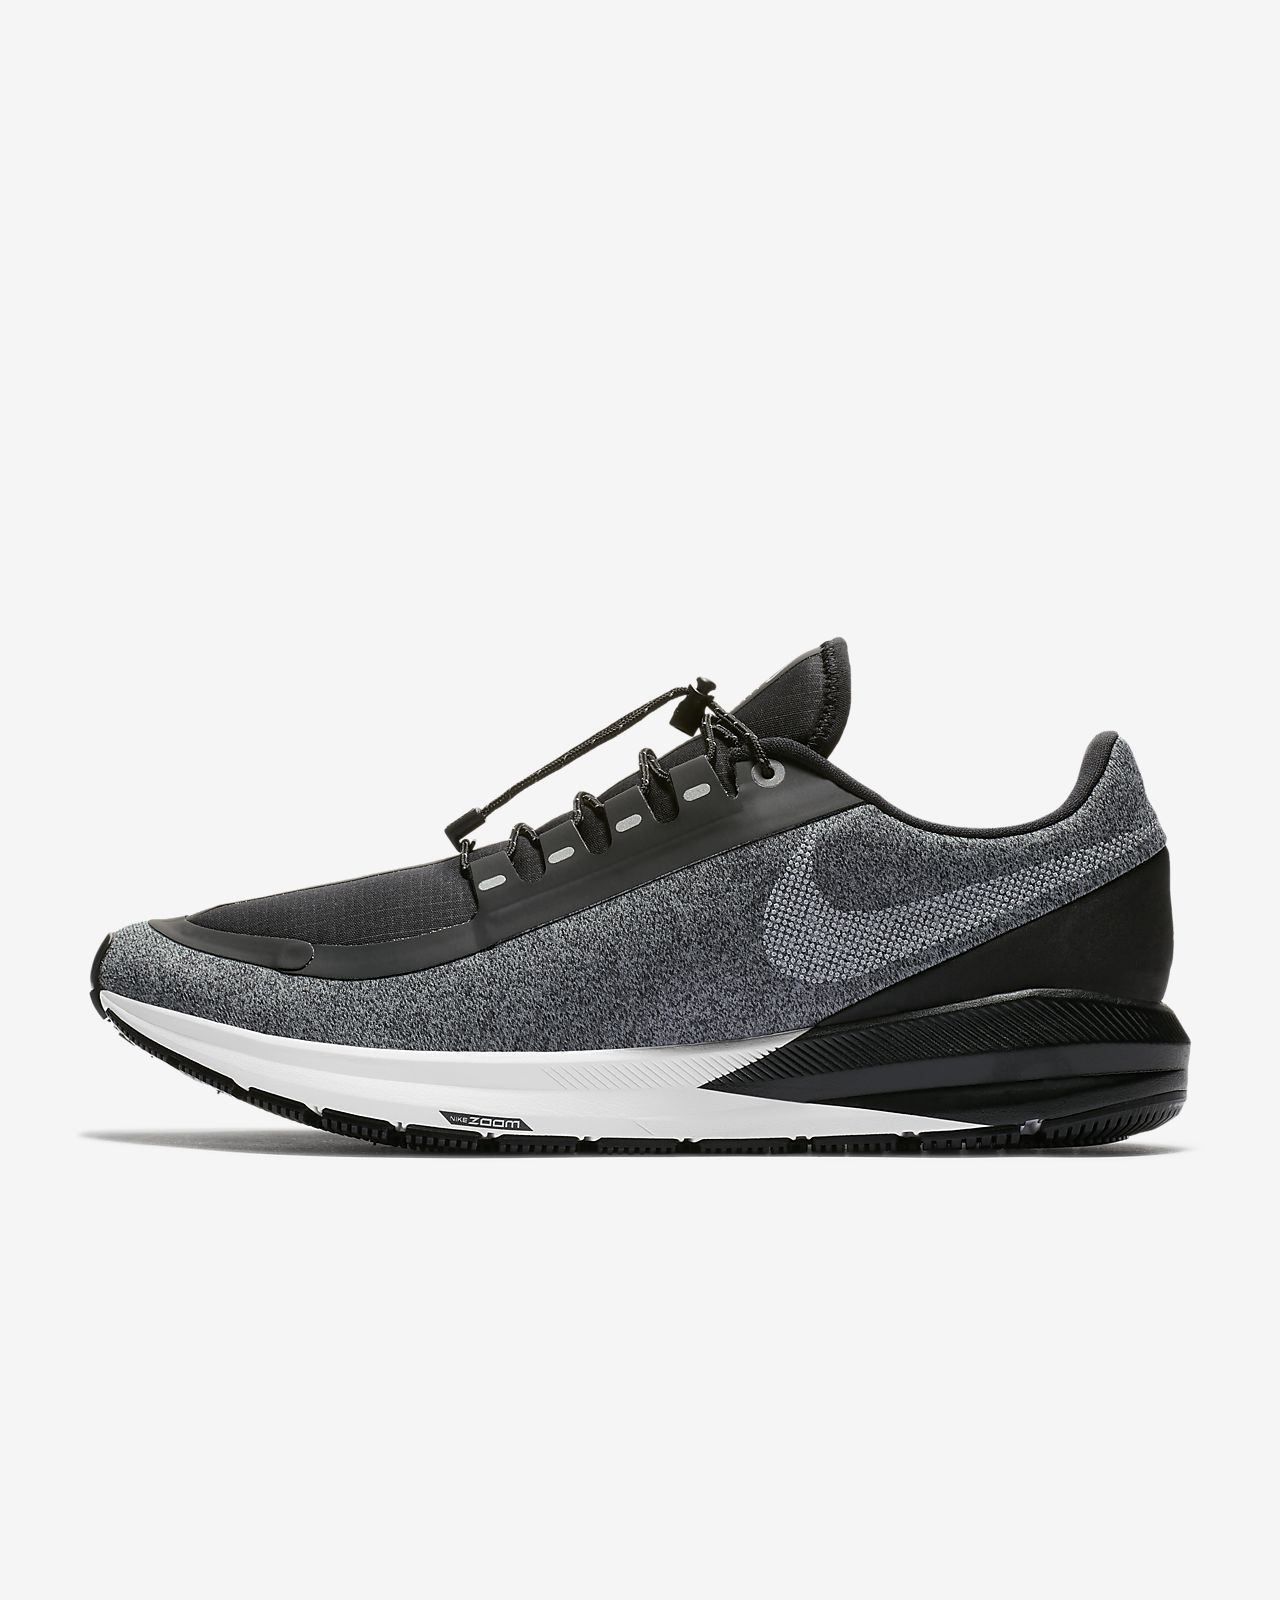 Size Structure Shield Nike 22 Men's Shoe Air 11 Zoom Running m0vN8nw